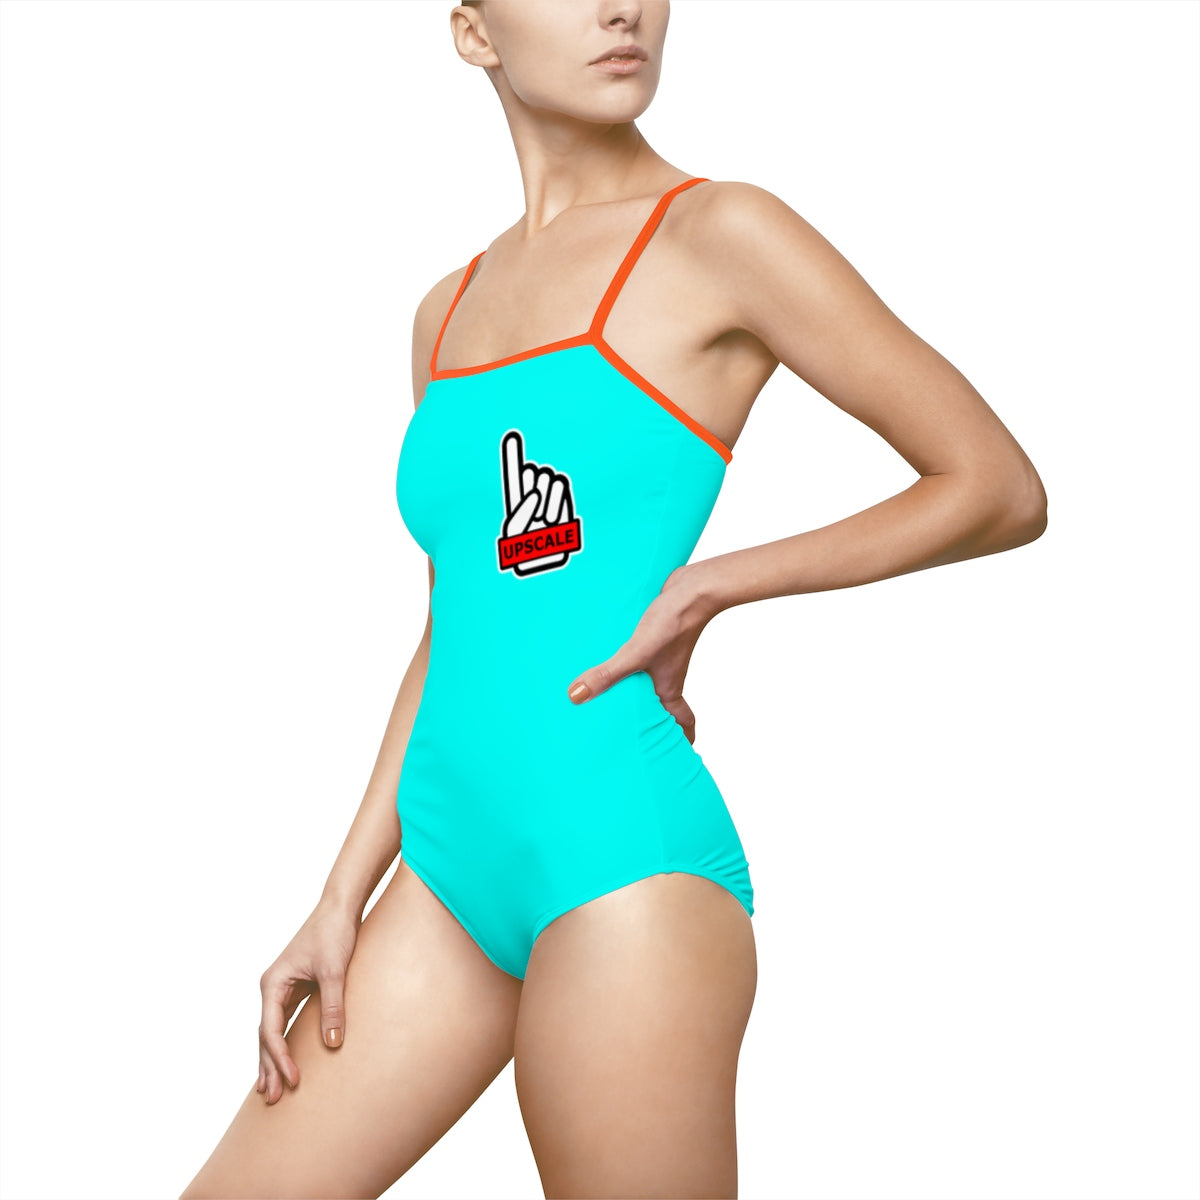 UPSCALE BELIZE - Womens Swimsuit in Blue by Reefmonkey partner Squad Movements